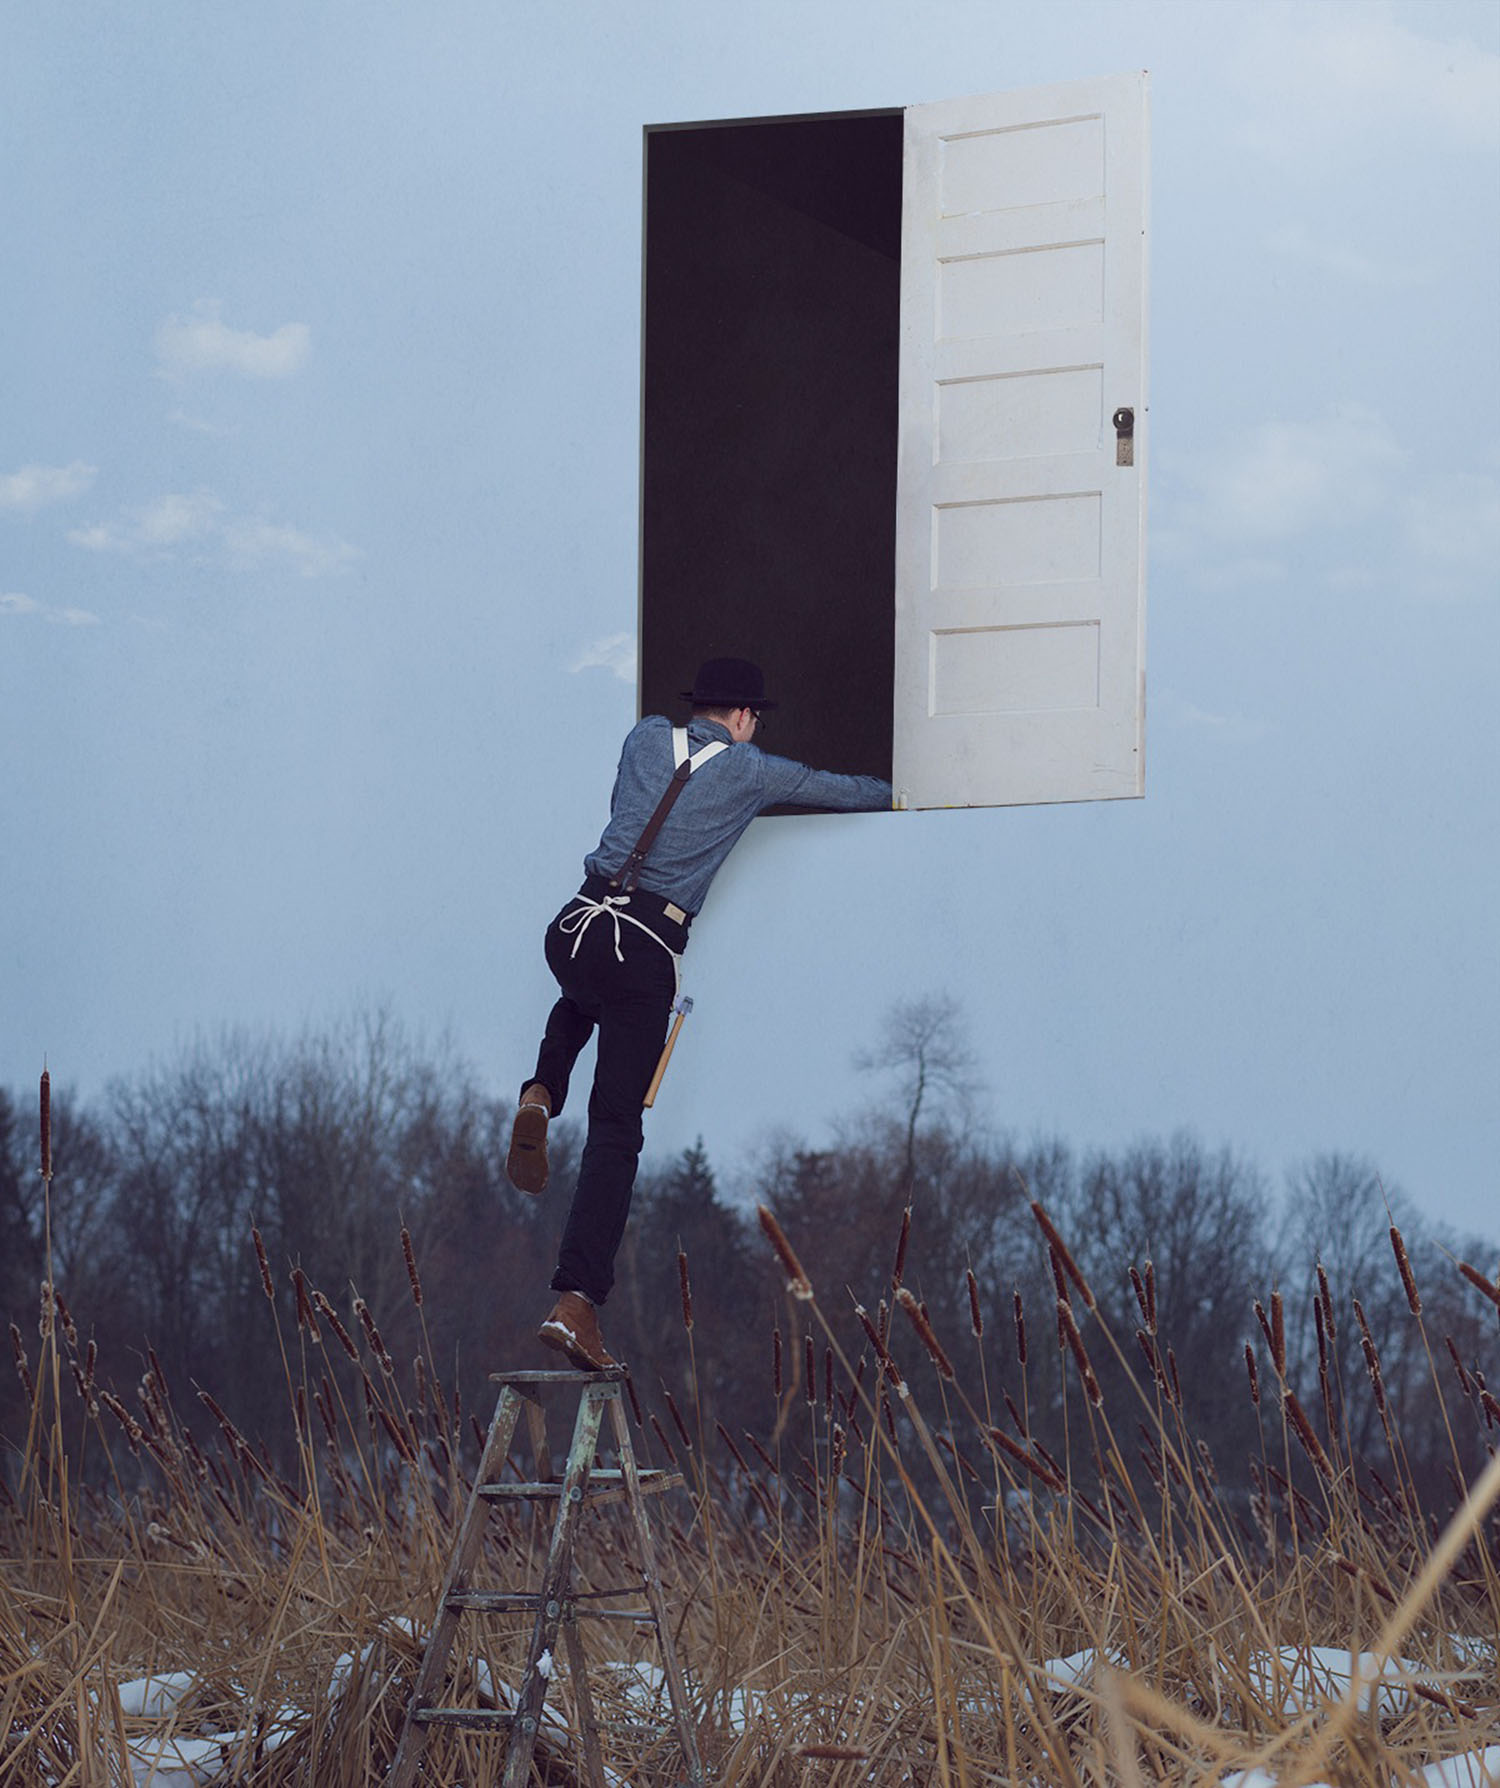 escapism surreal photography by logan zillmer